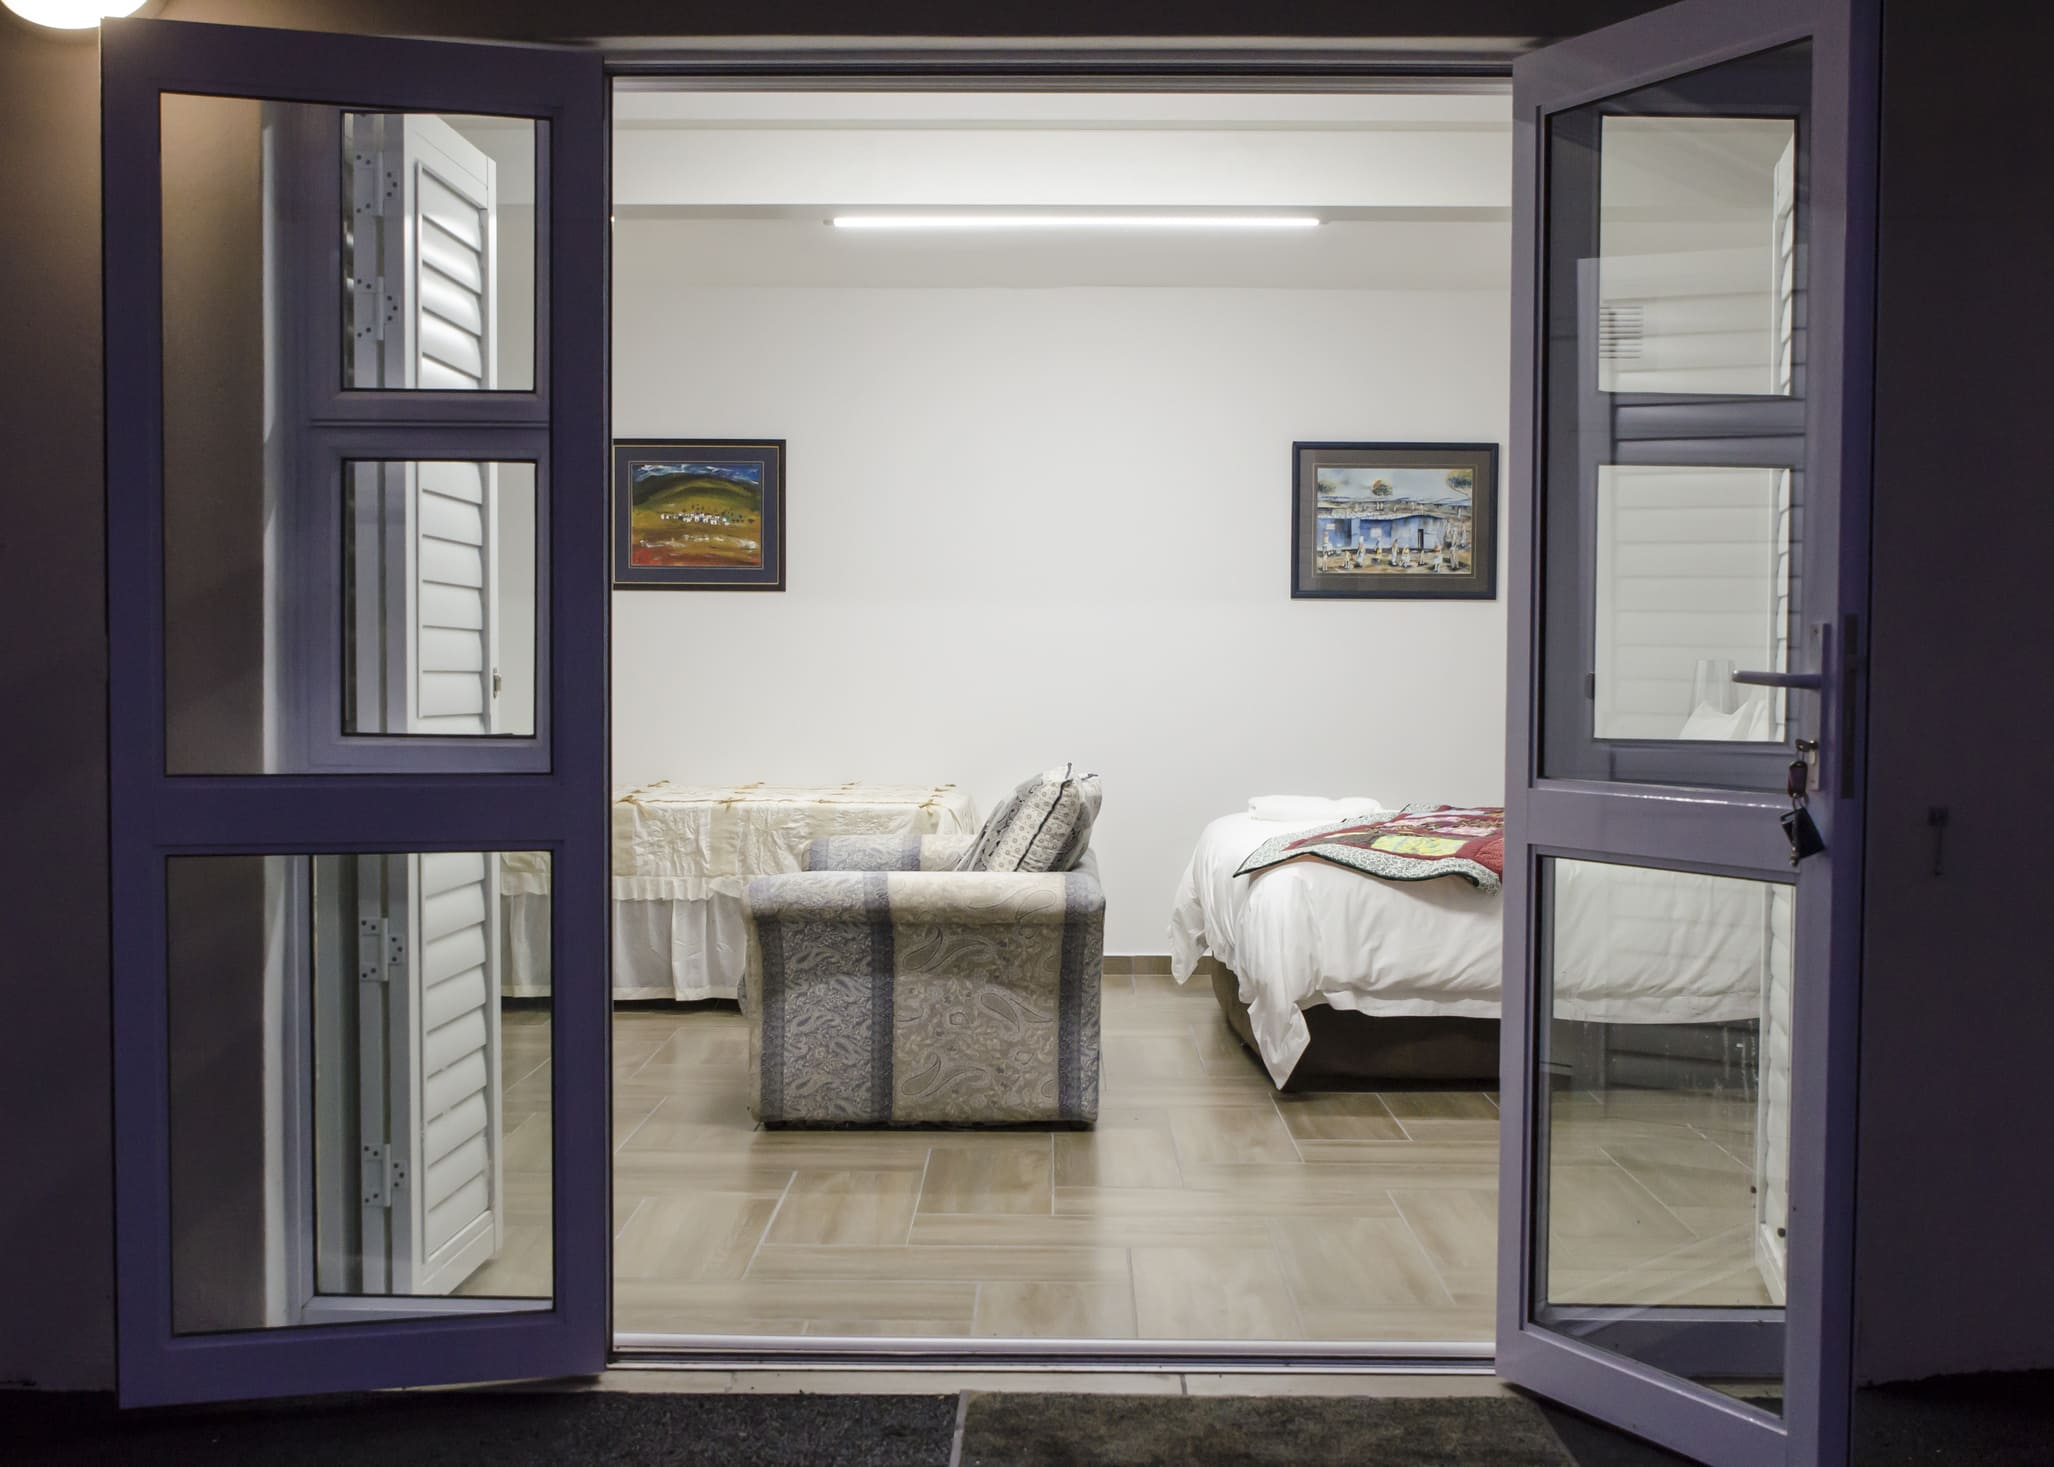 Take 5 room from the outside in through the open doors.